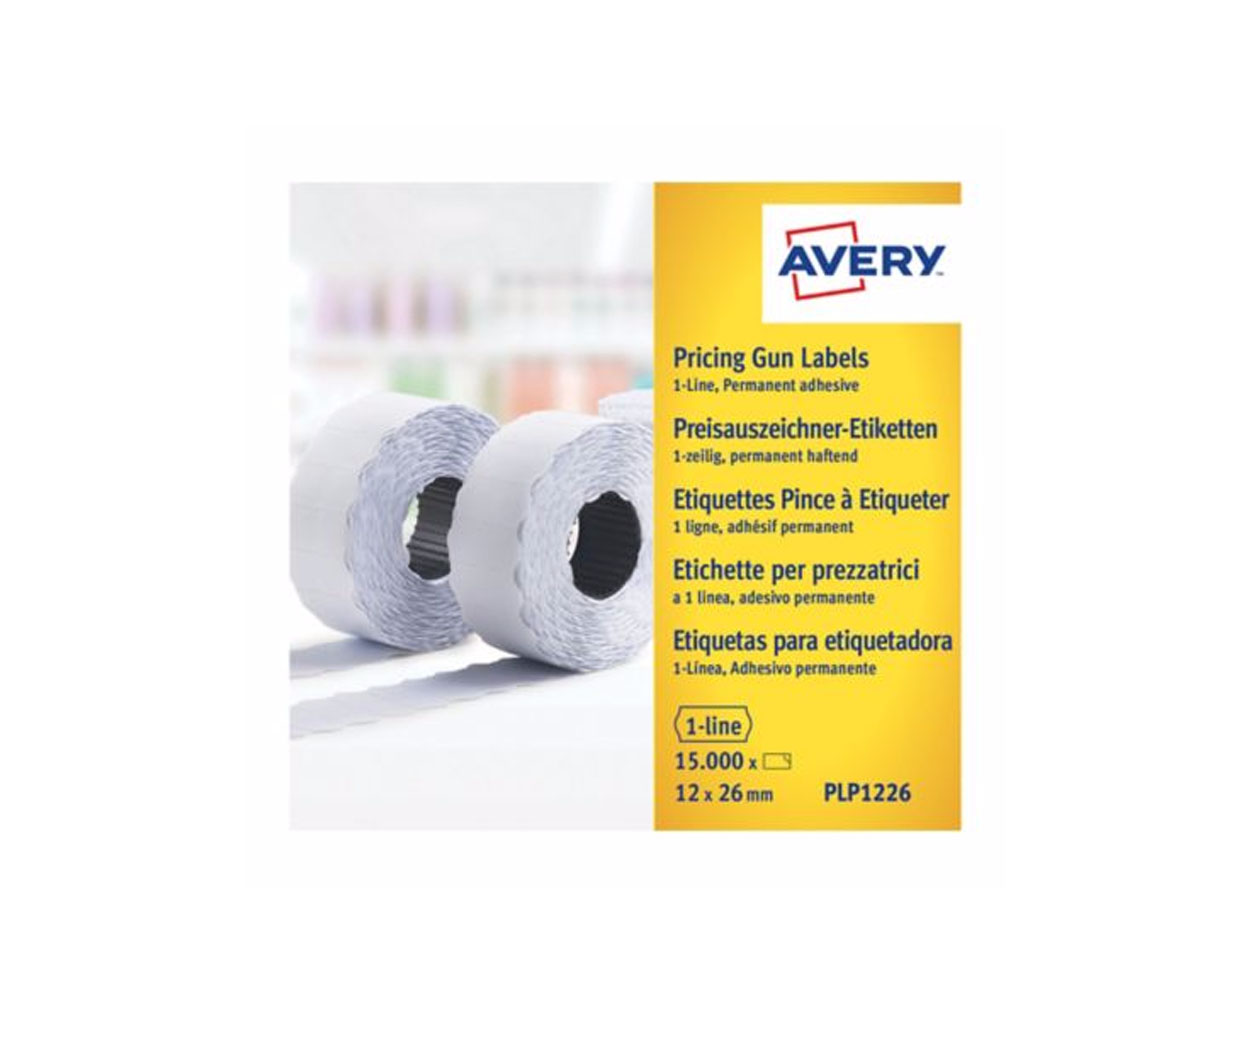 Avery Pricing Gun Labels 12 x 26mm - Pack of 1